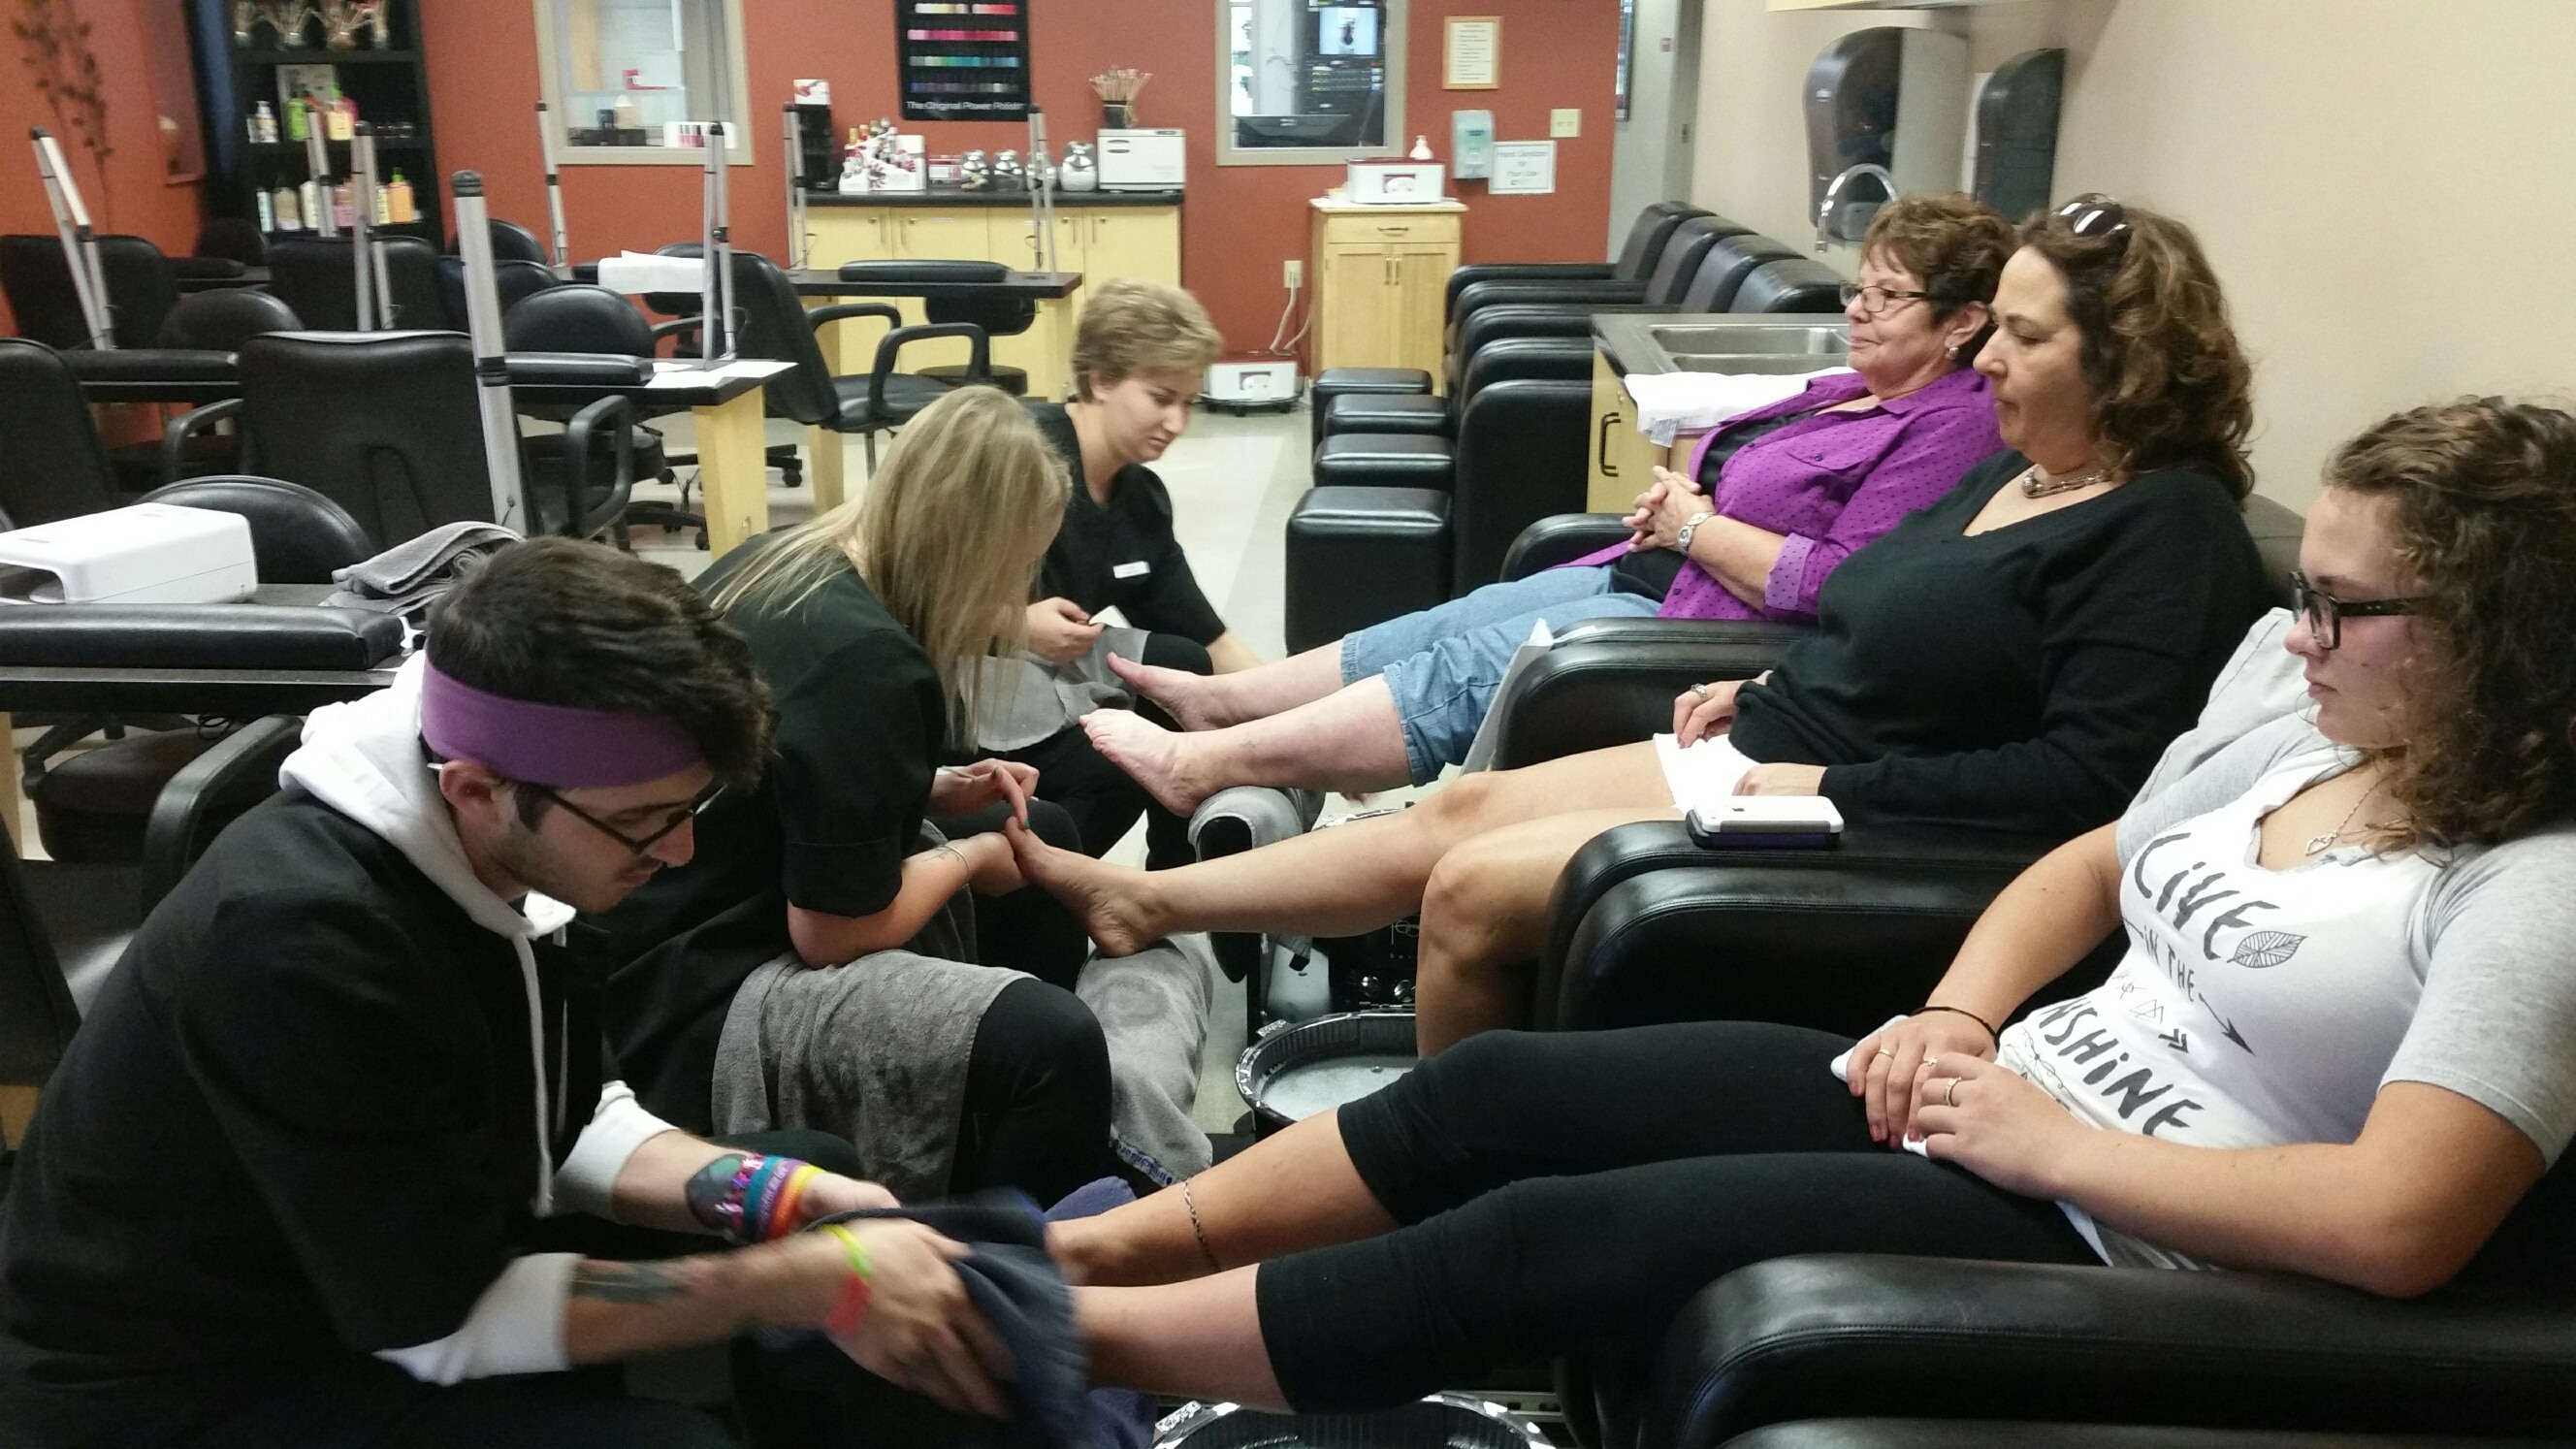 Pedicures done by moraine park students